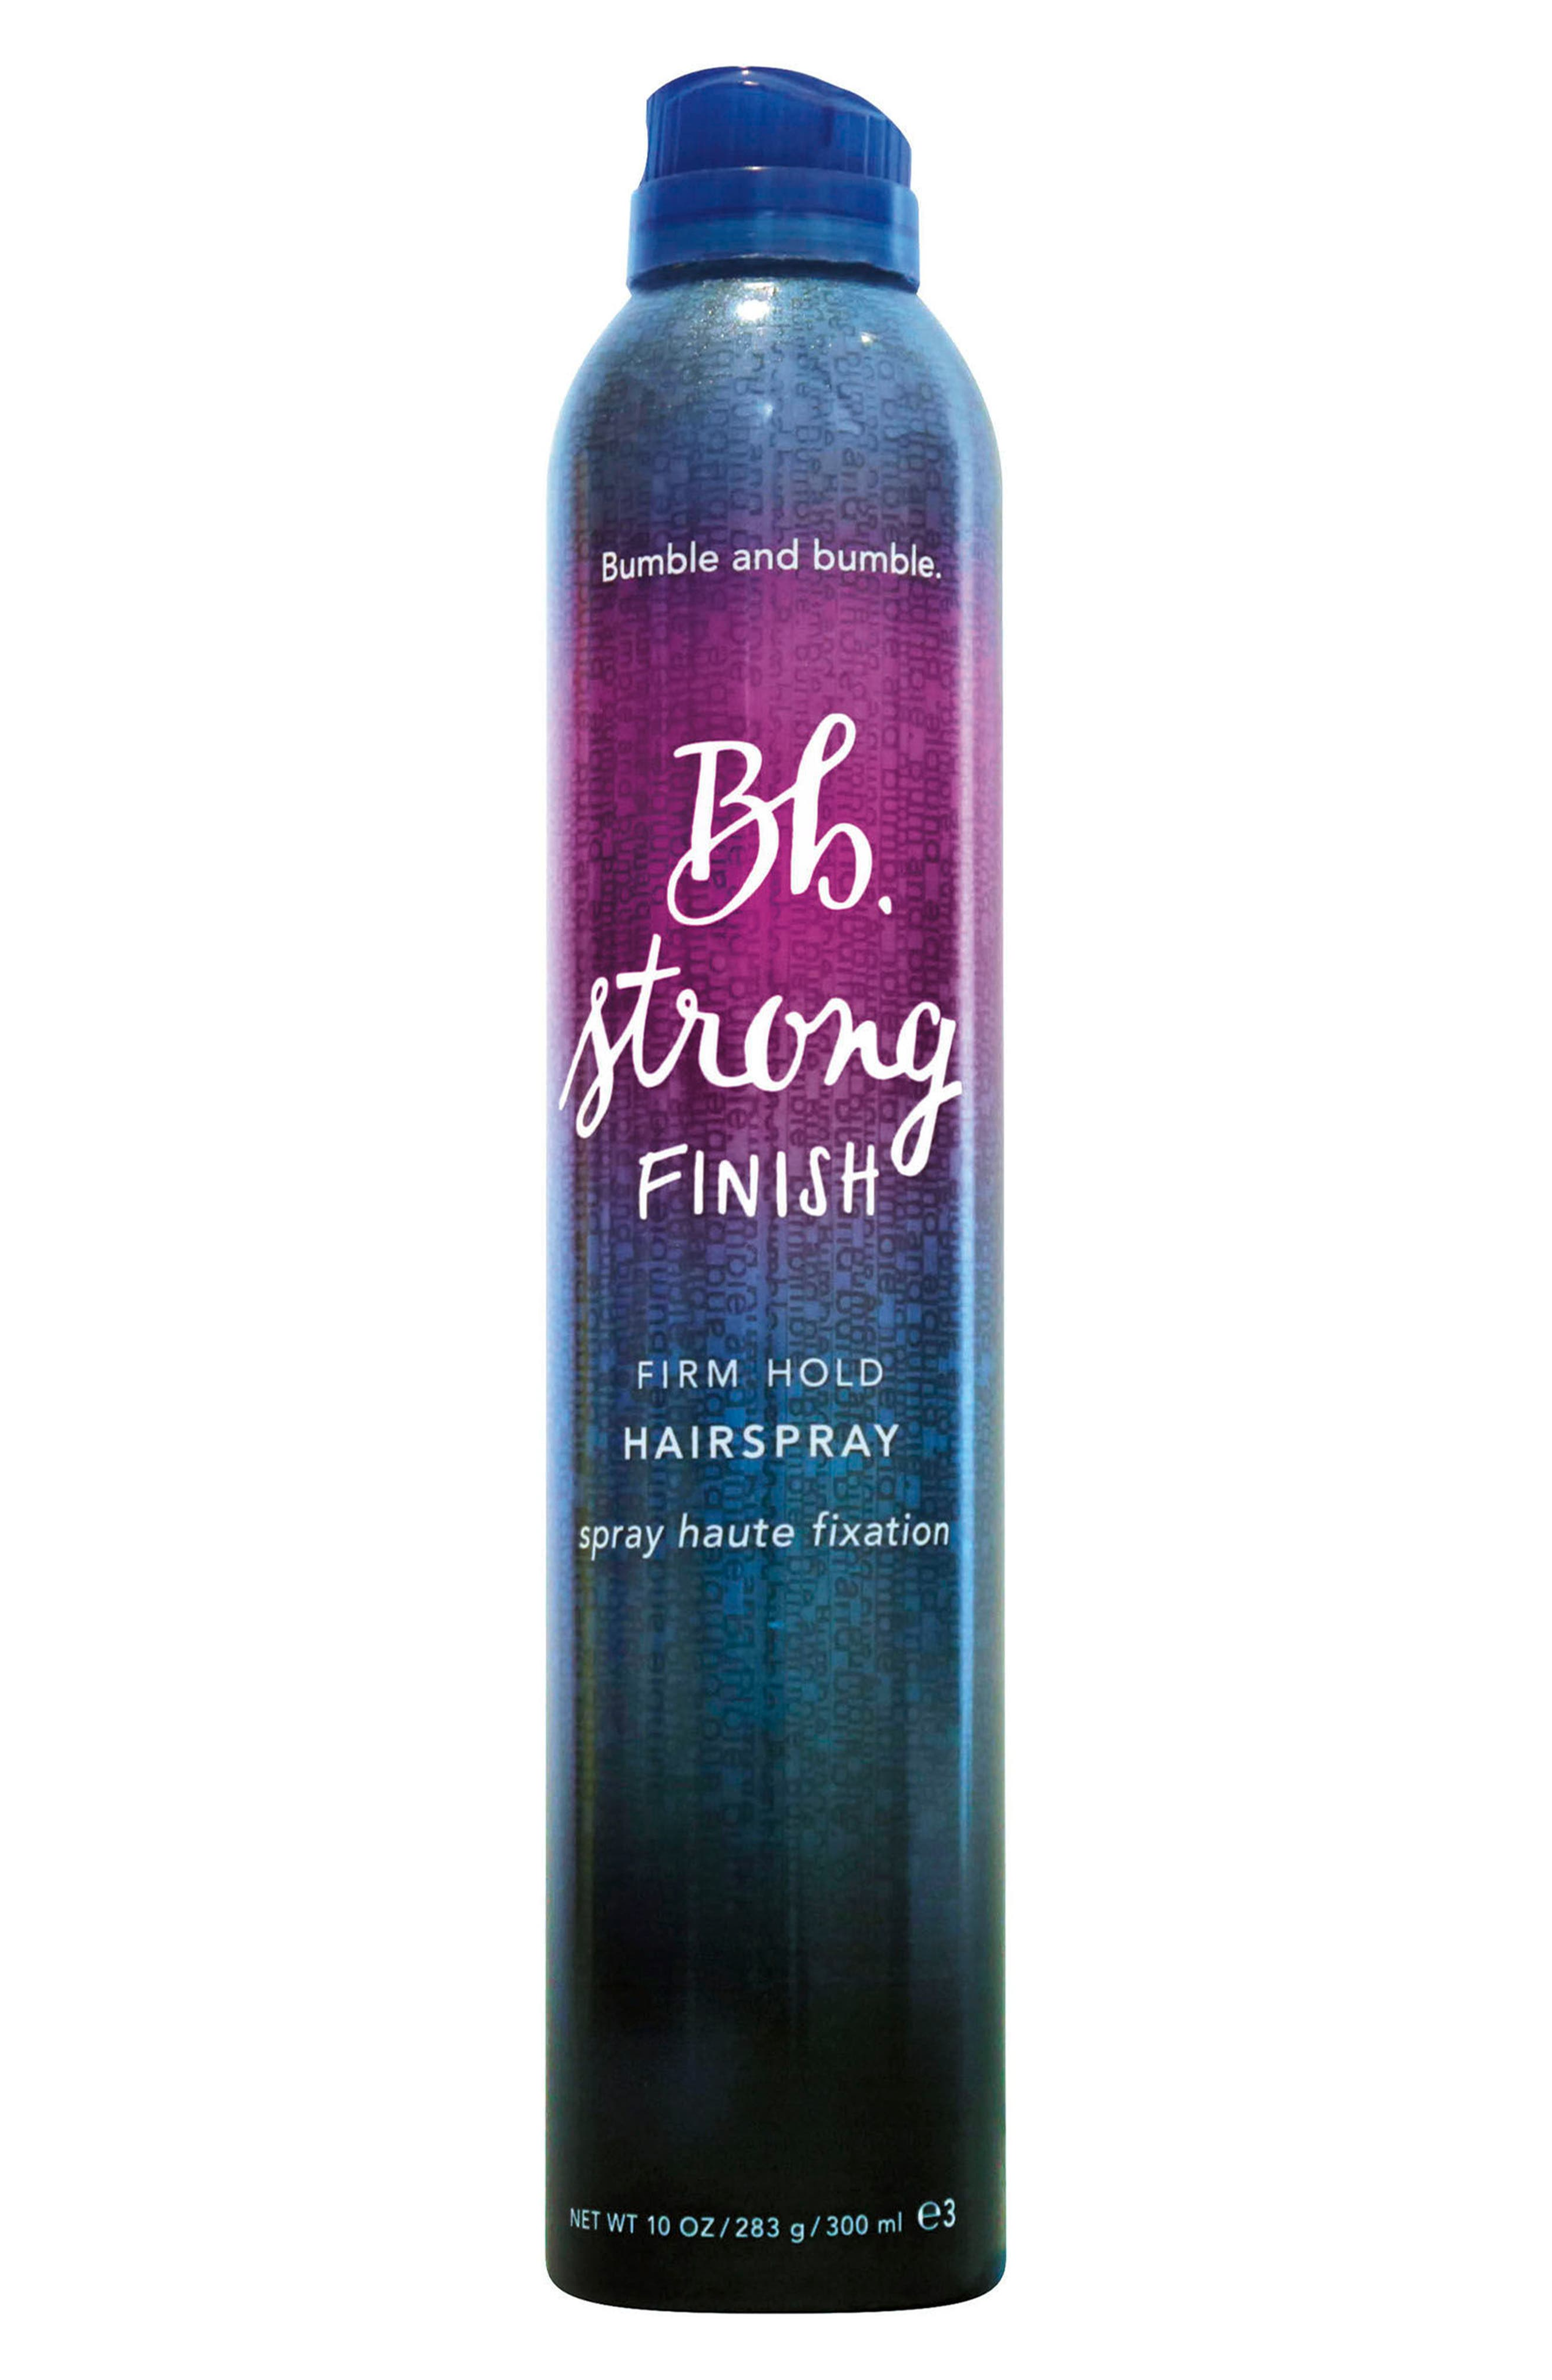 Alternate Image 1 Selected - Bumble and bumble Strong Finish Firm Hold Hairspray